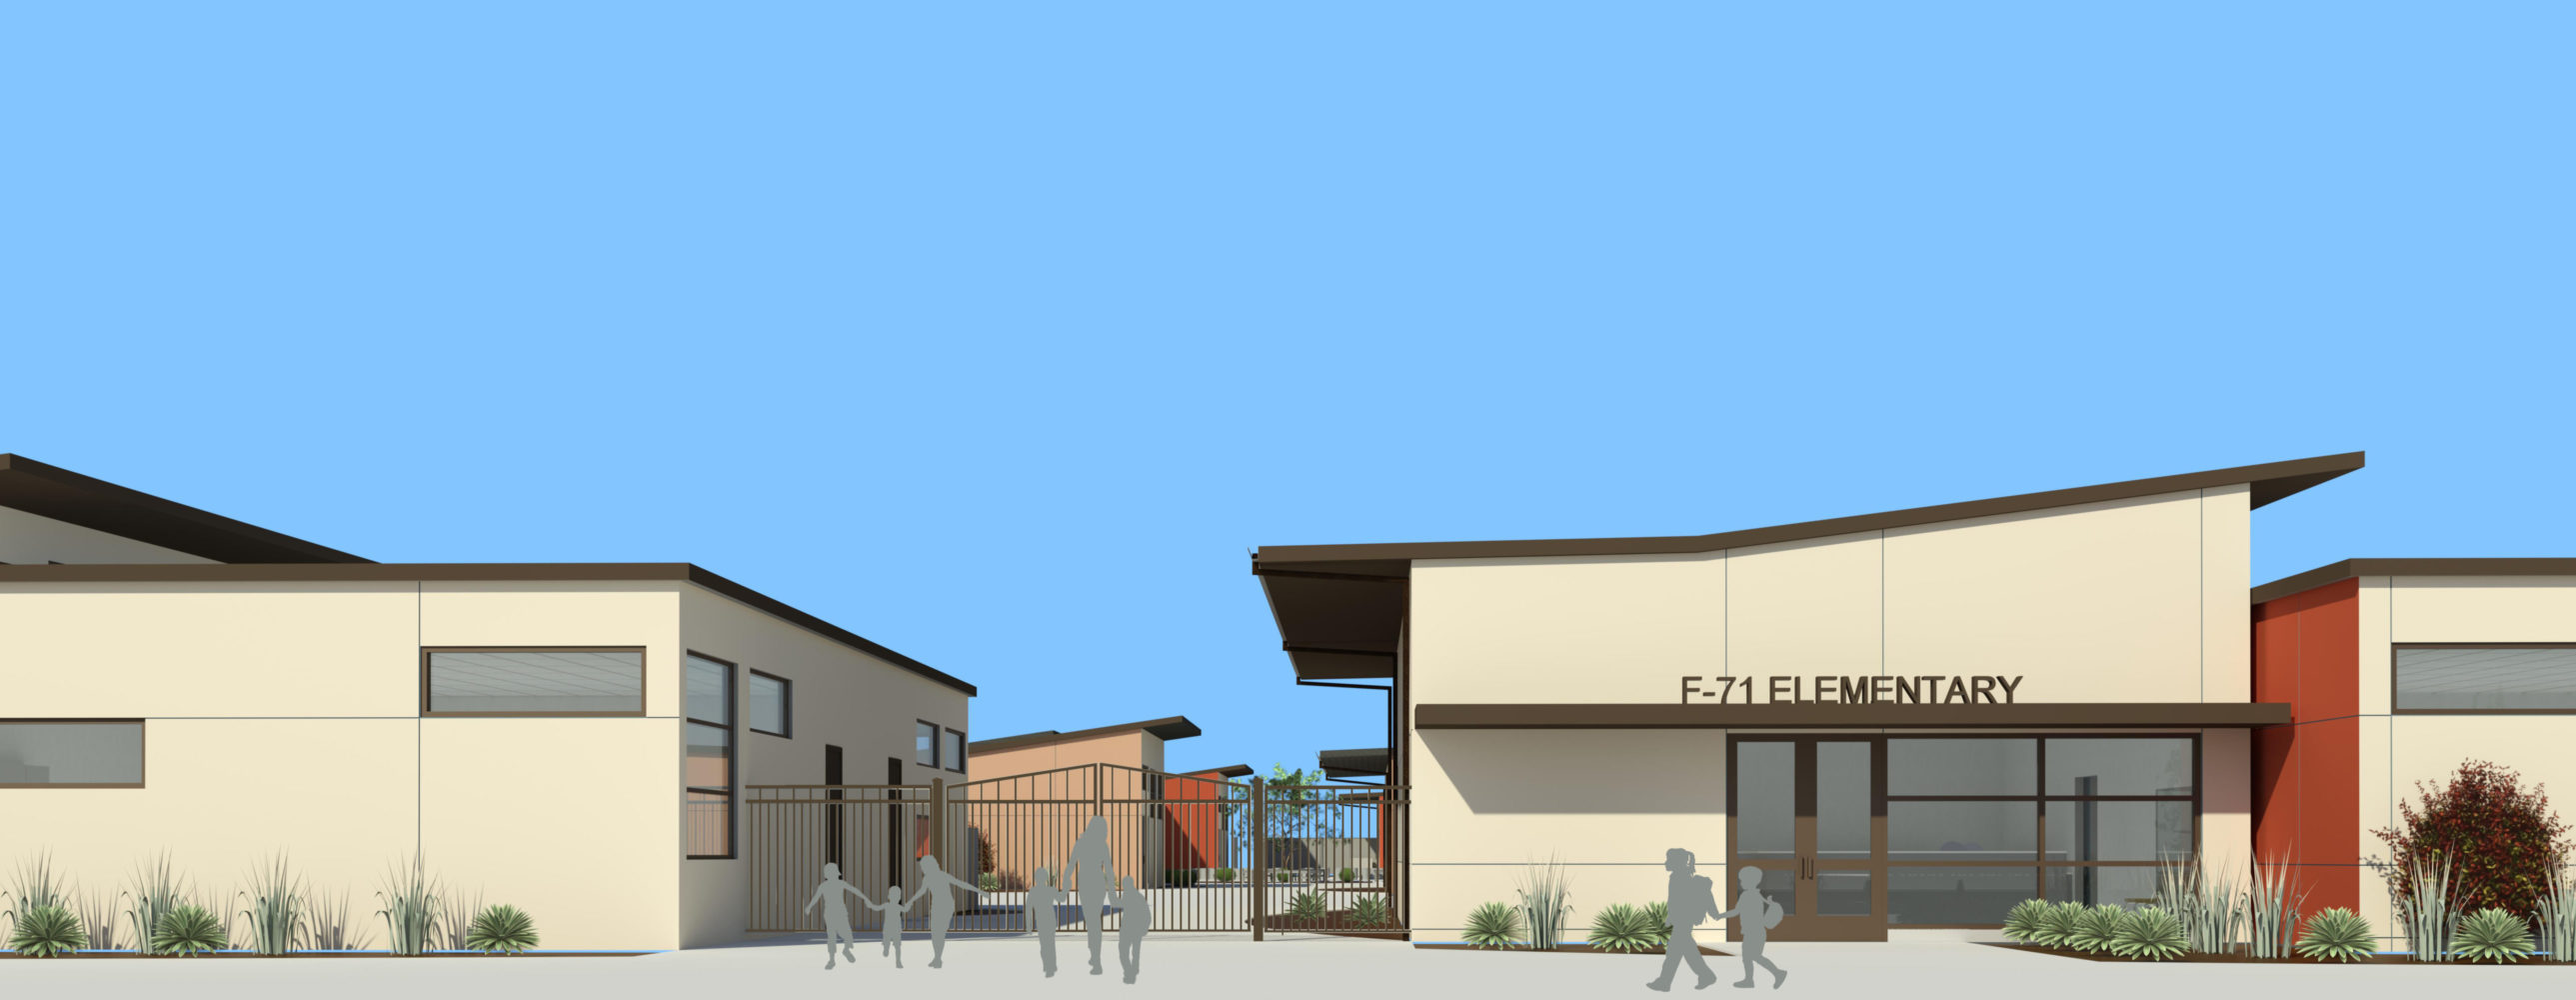 Riego Creek Elementary School Architect Rendering